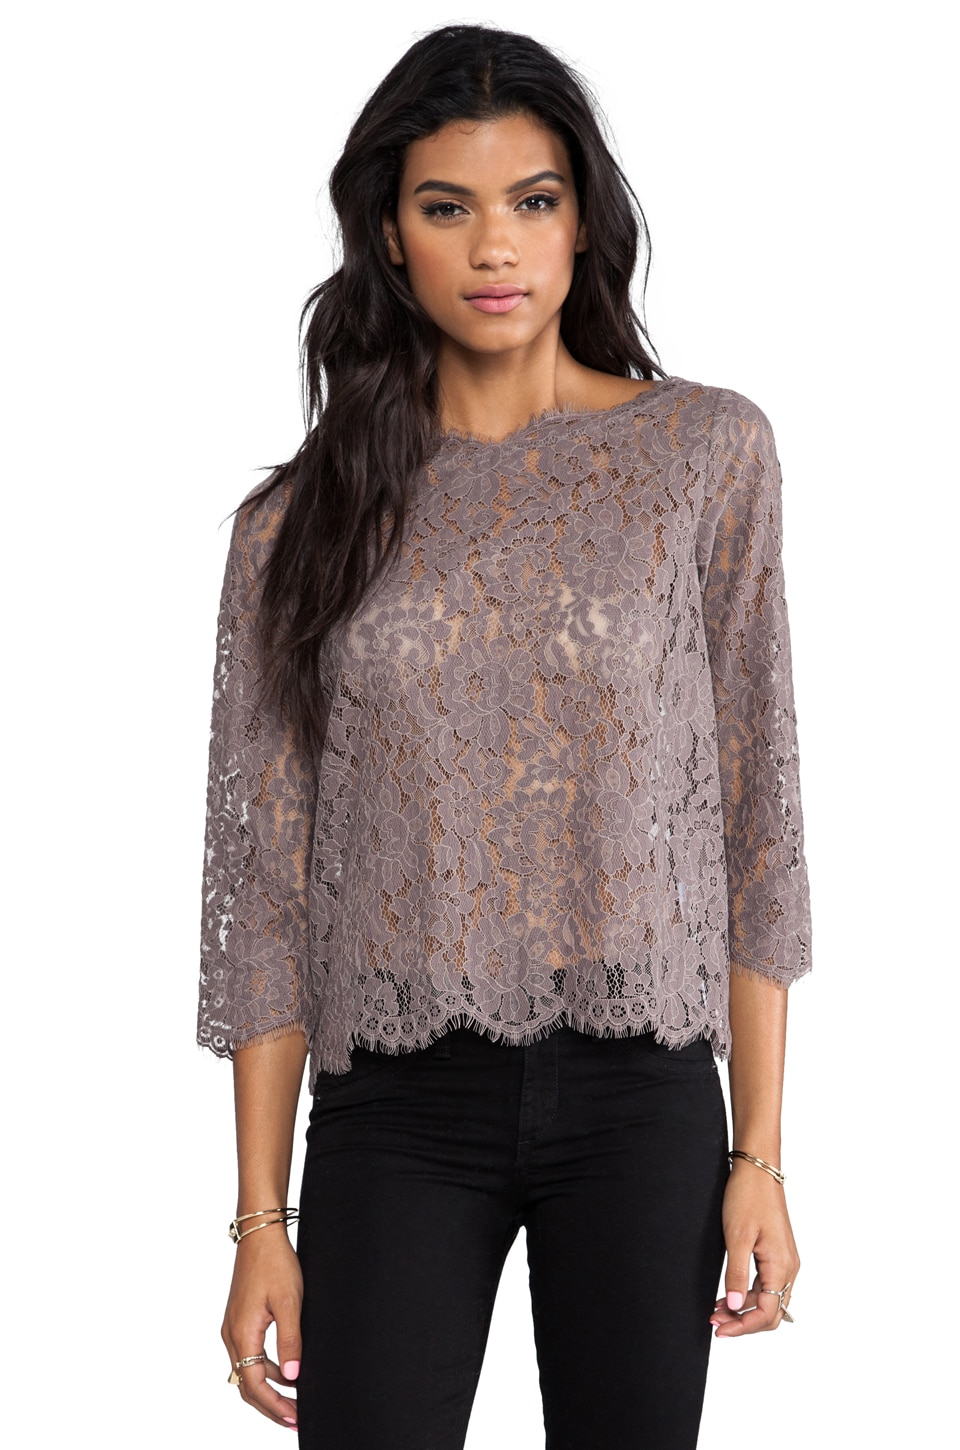 Joie Allover Lace Elvia C Top in Mink